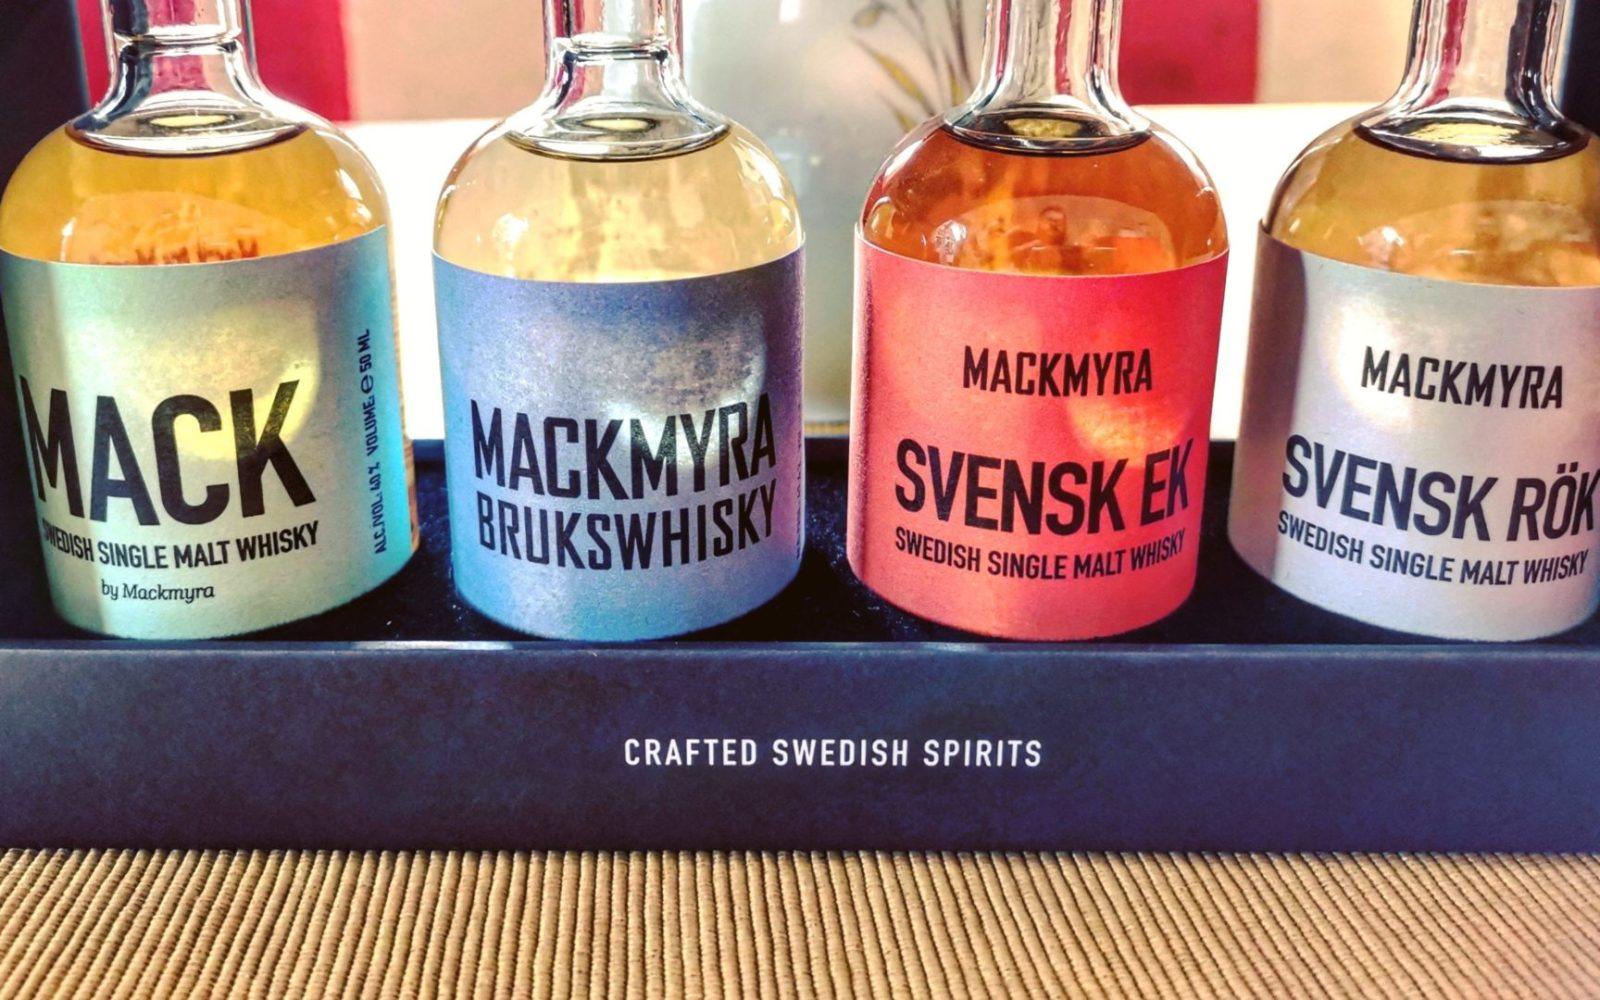 Mackmyra Swedish Whisky Samples